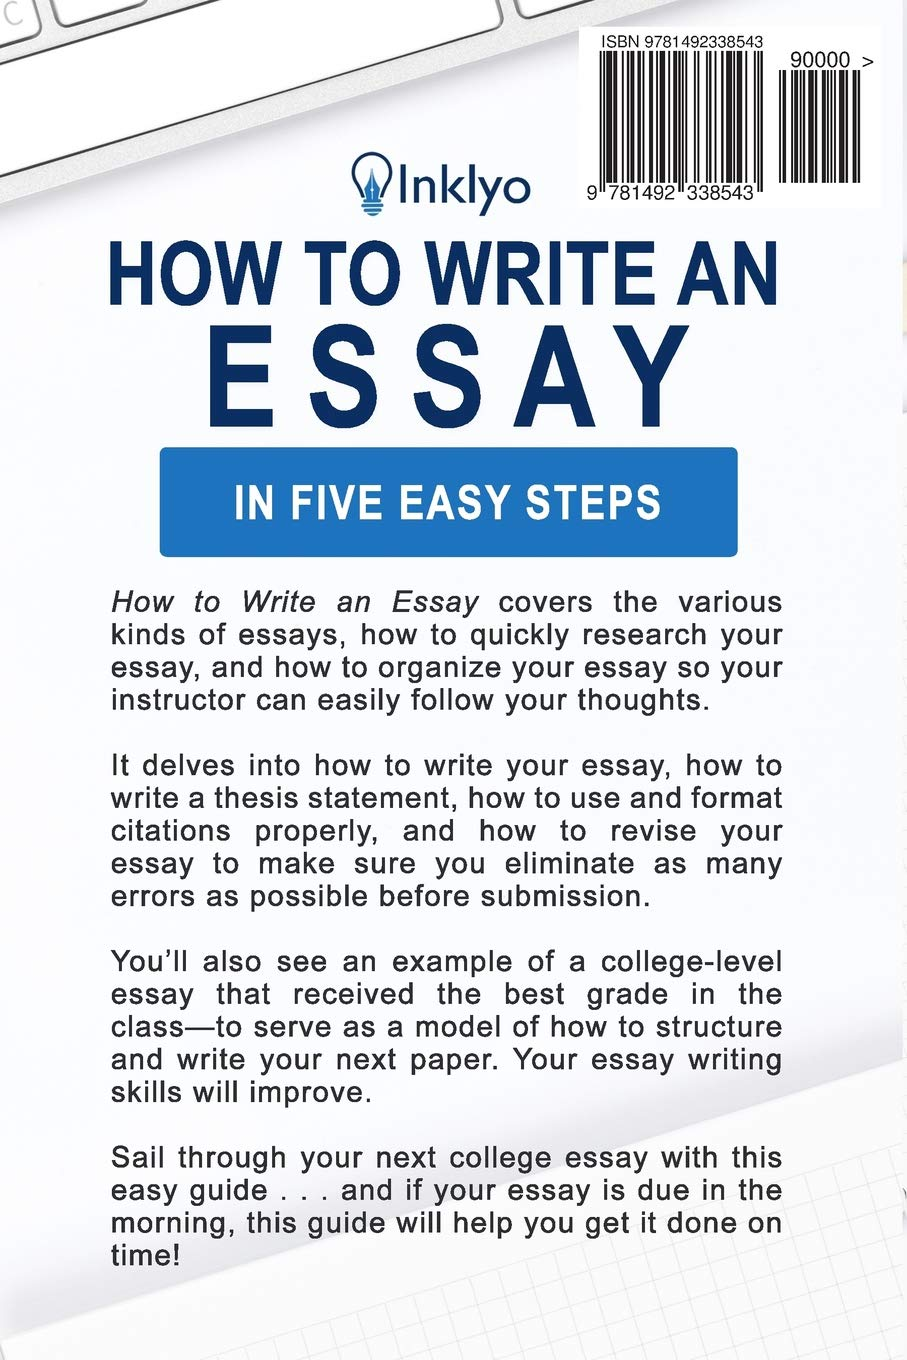 002 How To Write An Essay Example Shocking For College Scholarships About Yourself Application Fast Food Full